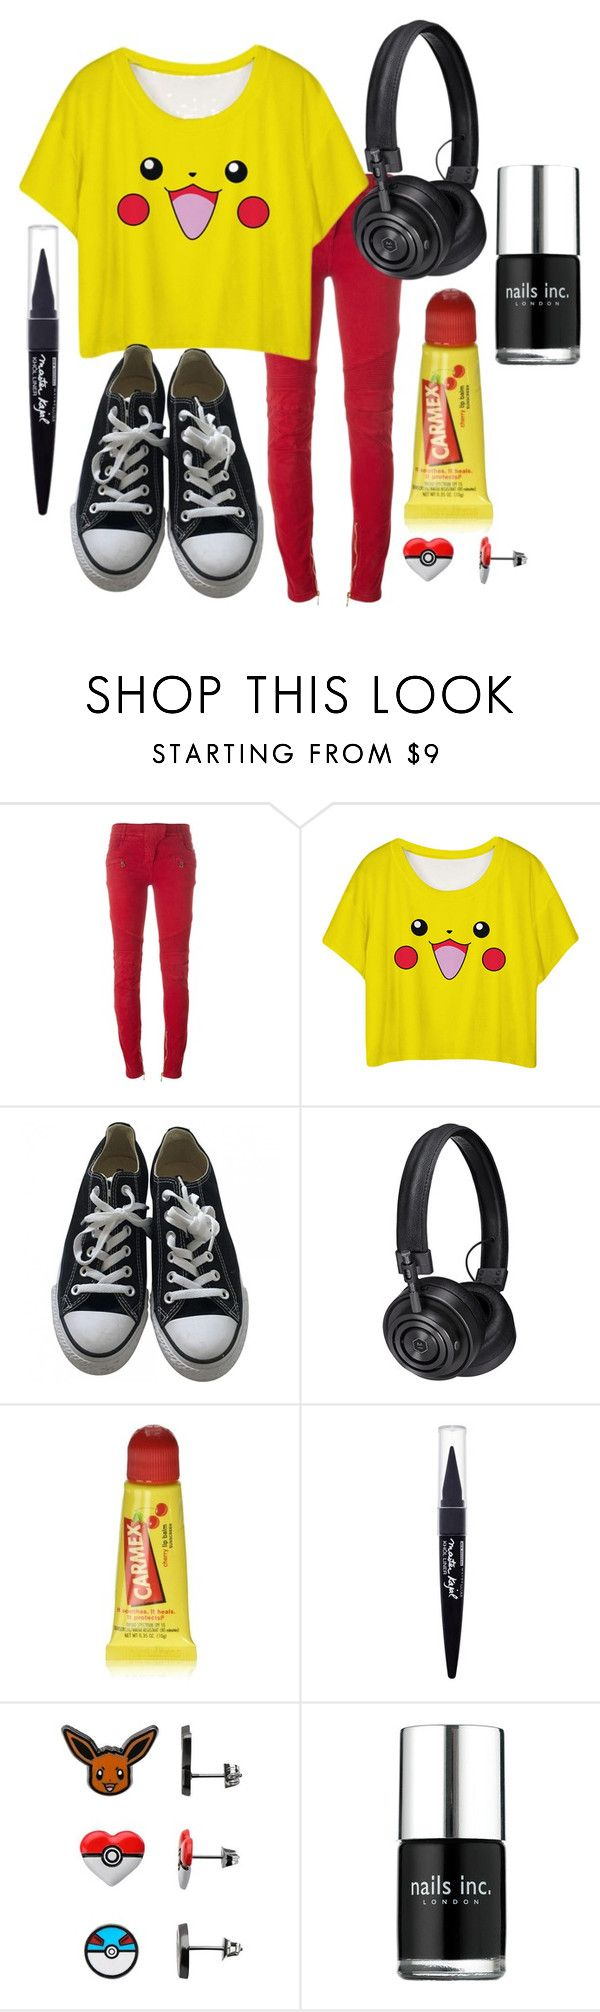 """Pikachu Casual"" by adventuretimekitty ❤ liked on Polyvore featuring Balmain, Converse, Master & Dynamic, Carmex, Maybelline, Ball, Nails Inc., yellow, black and red"